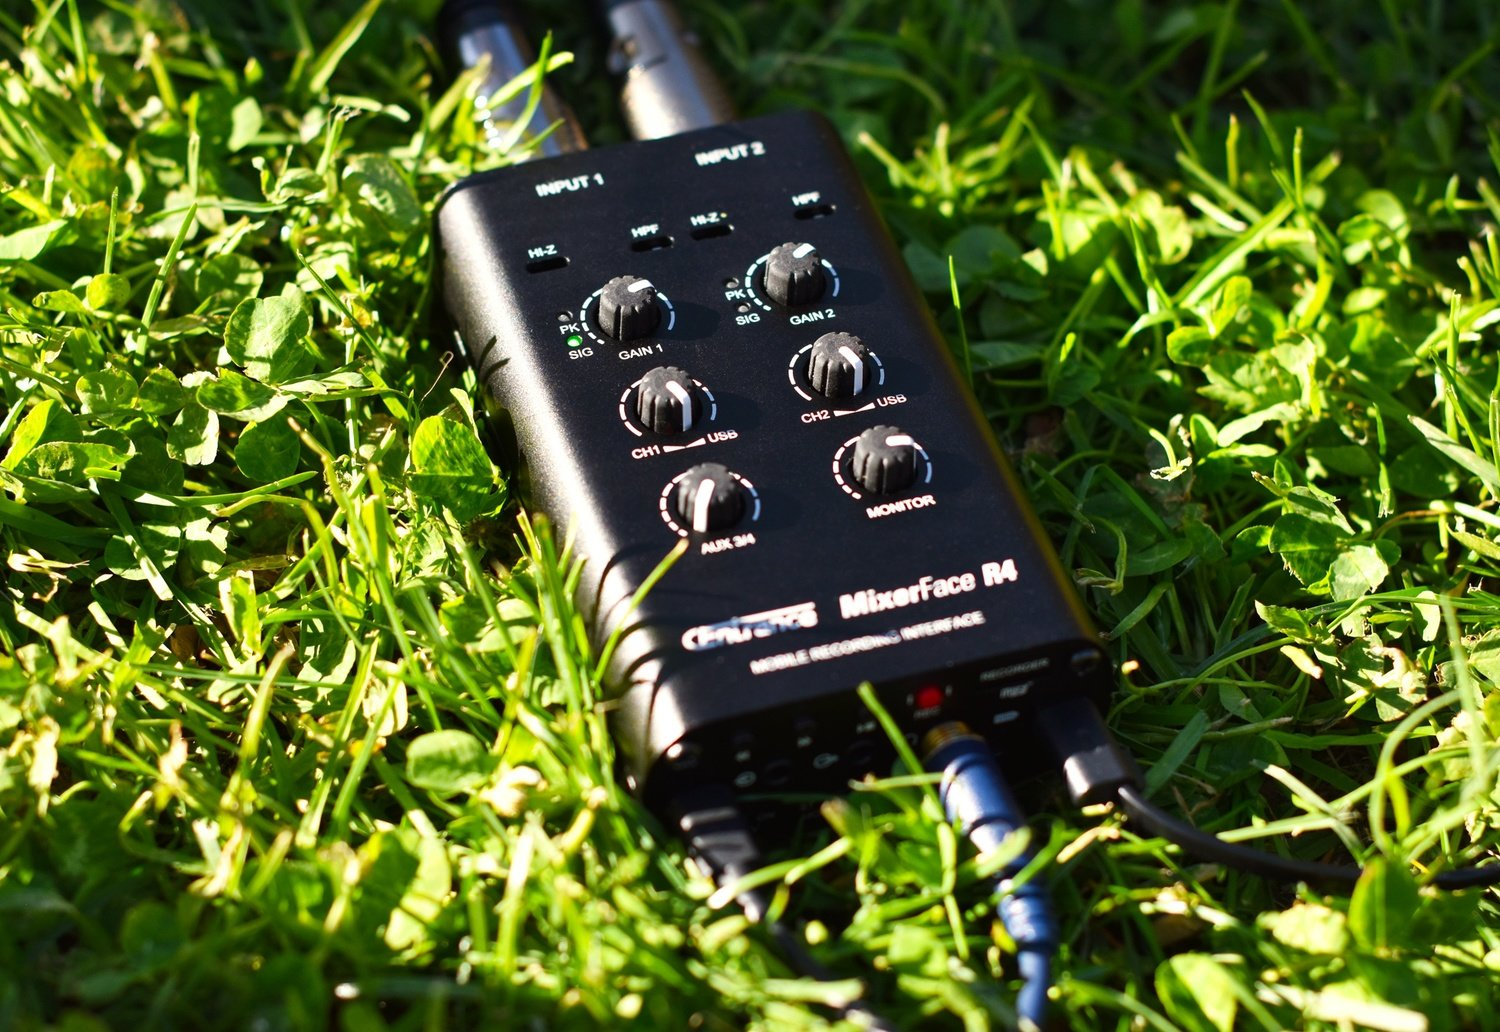 MixerFace R4R - Mobile Recording Interface with micro-SD Card Stereo  Recorder 5 05 0 out of 5 stars5100%100%40%0%30%0%20%0%10%0%See all reviews  23